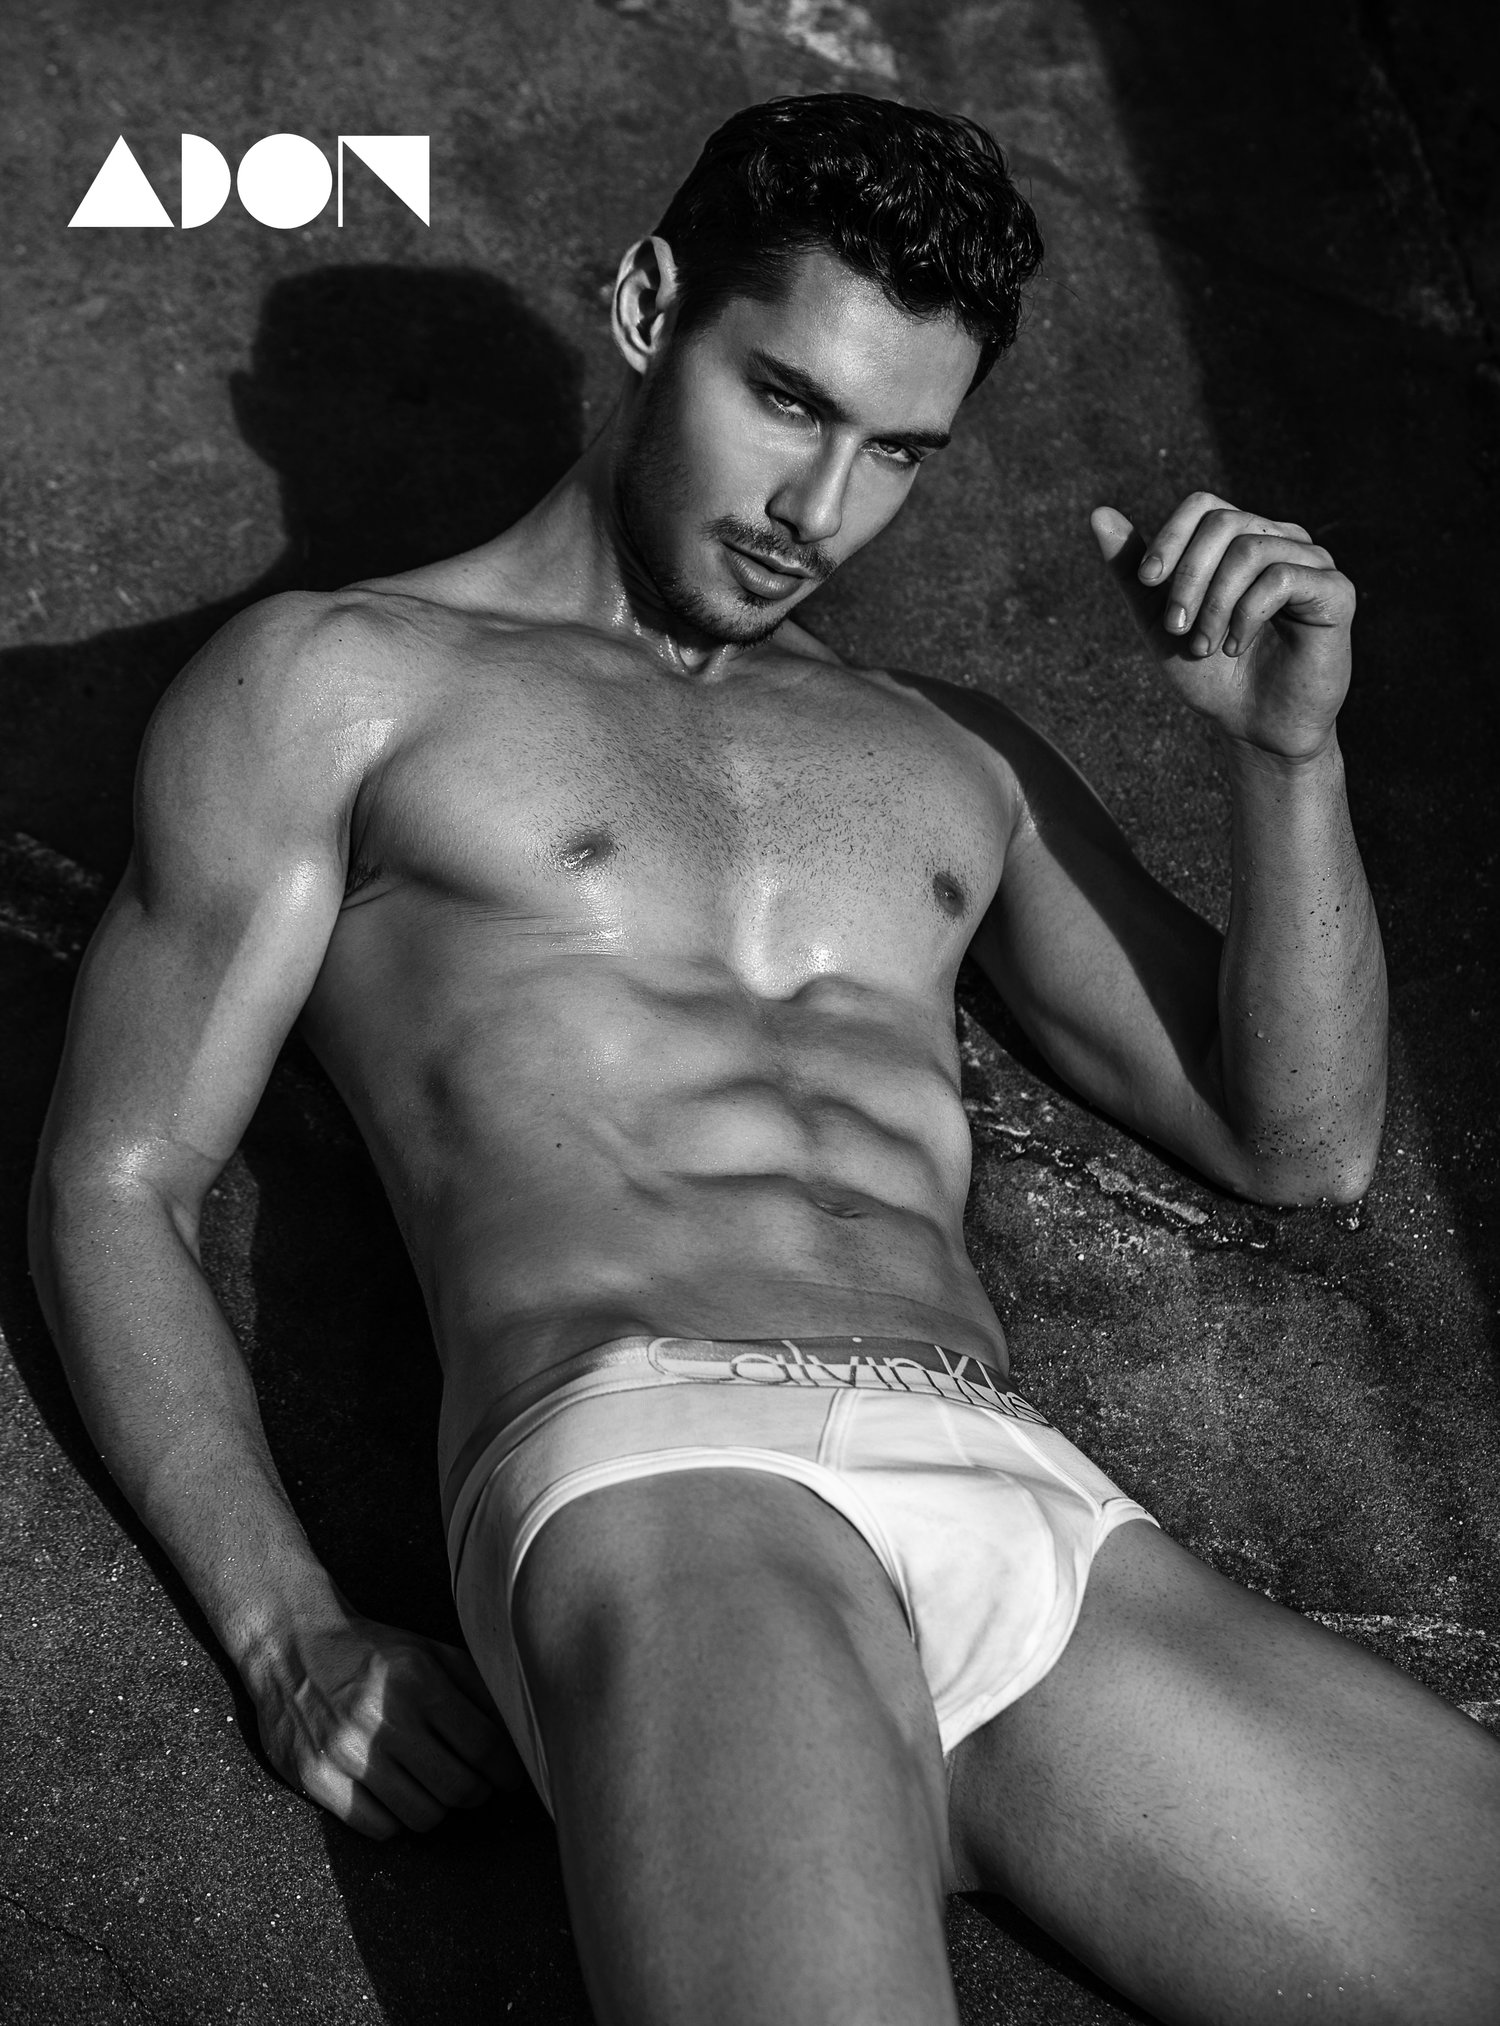 Adon Exclusive: Model Everton Stedile By Jason Oung